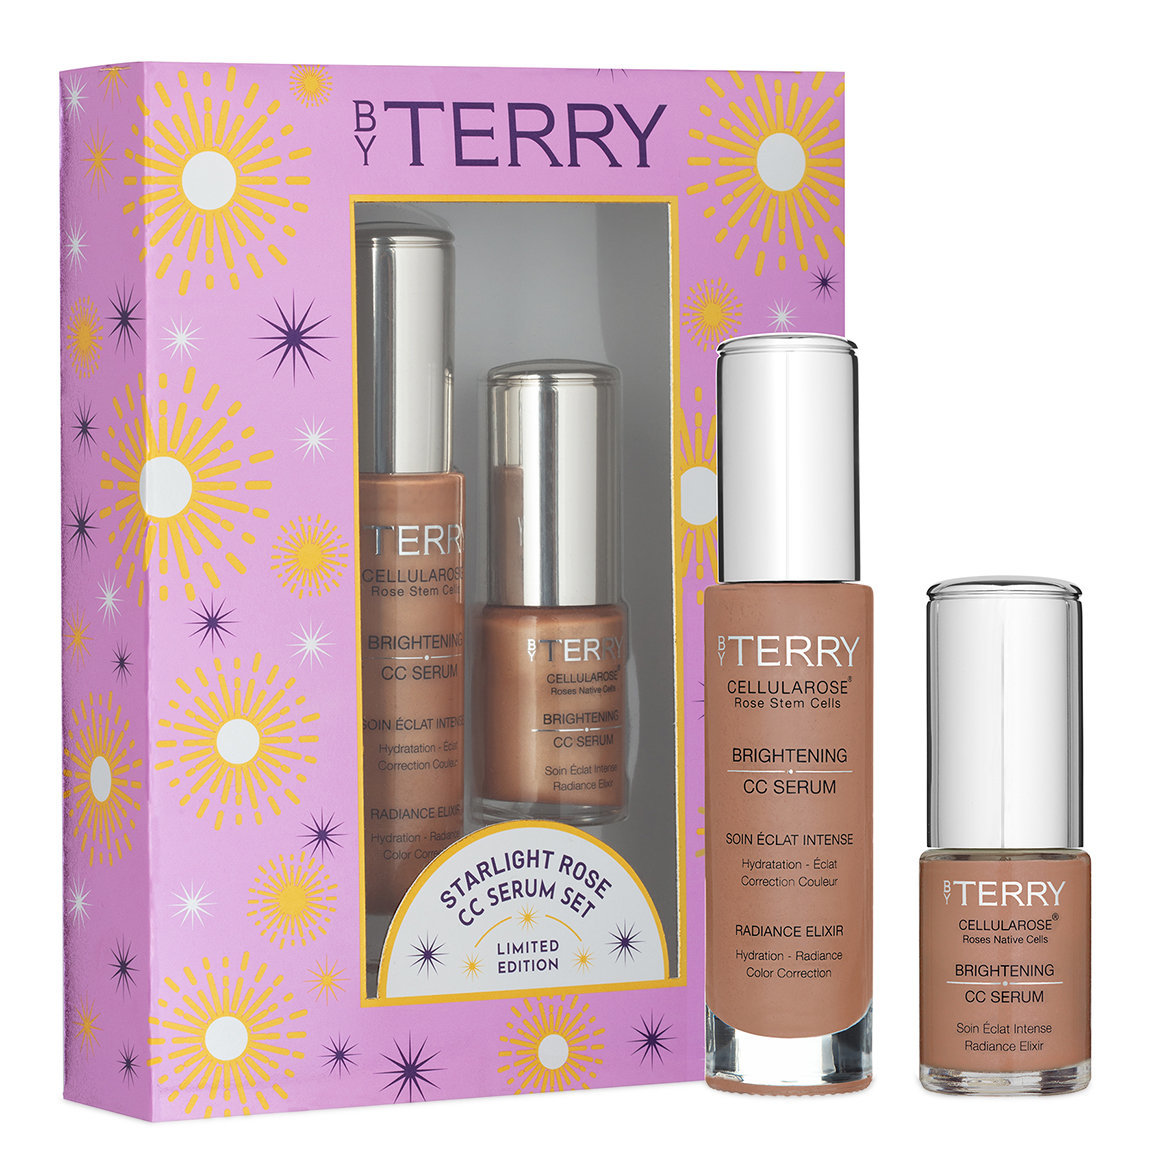 BY TERRY Starlight Rose CC Serum Set No. 4 product swatch.